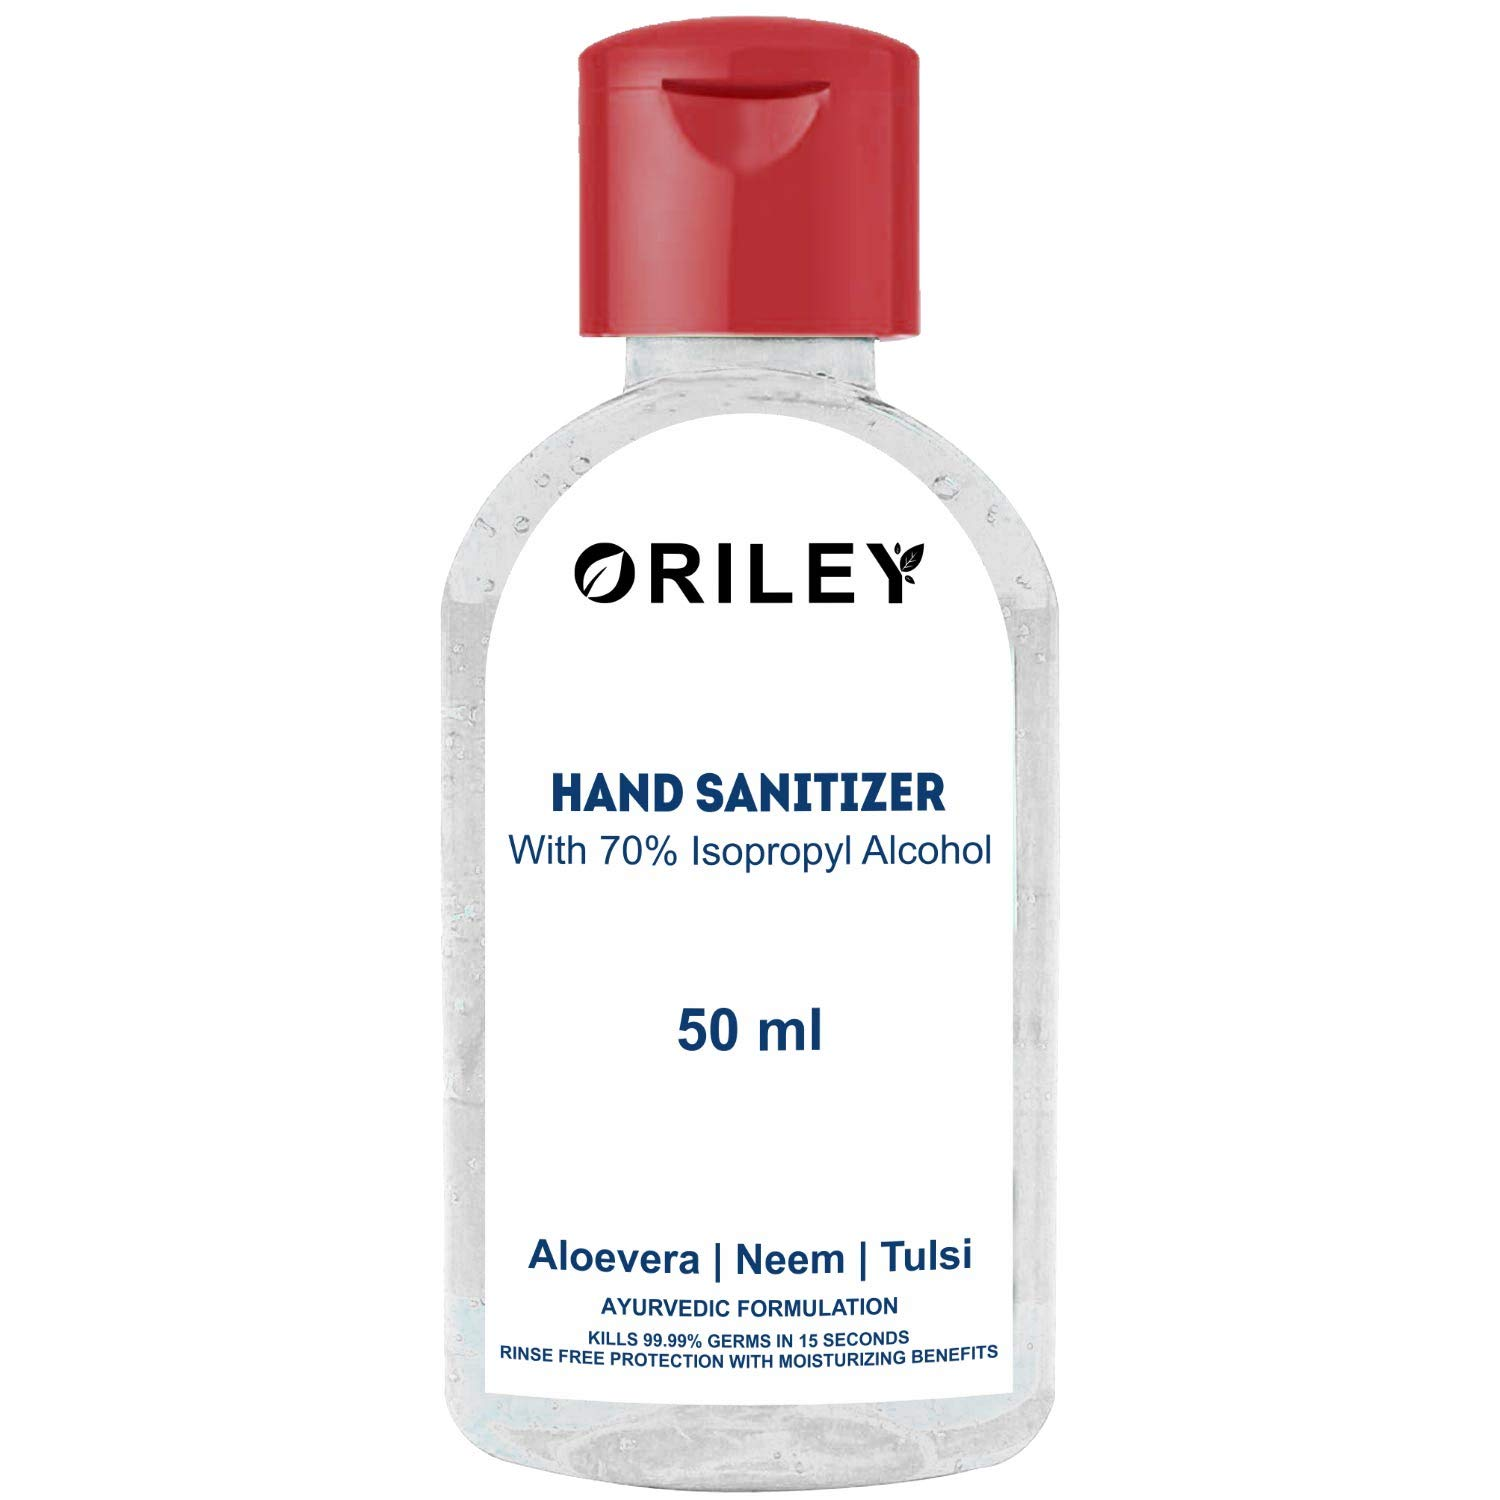 Oriley Waterless Advanced Hand Sanitizer Alcohol-Based Instant Germ Protection - 50ml